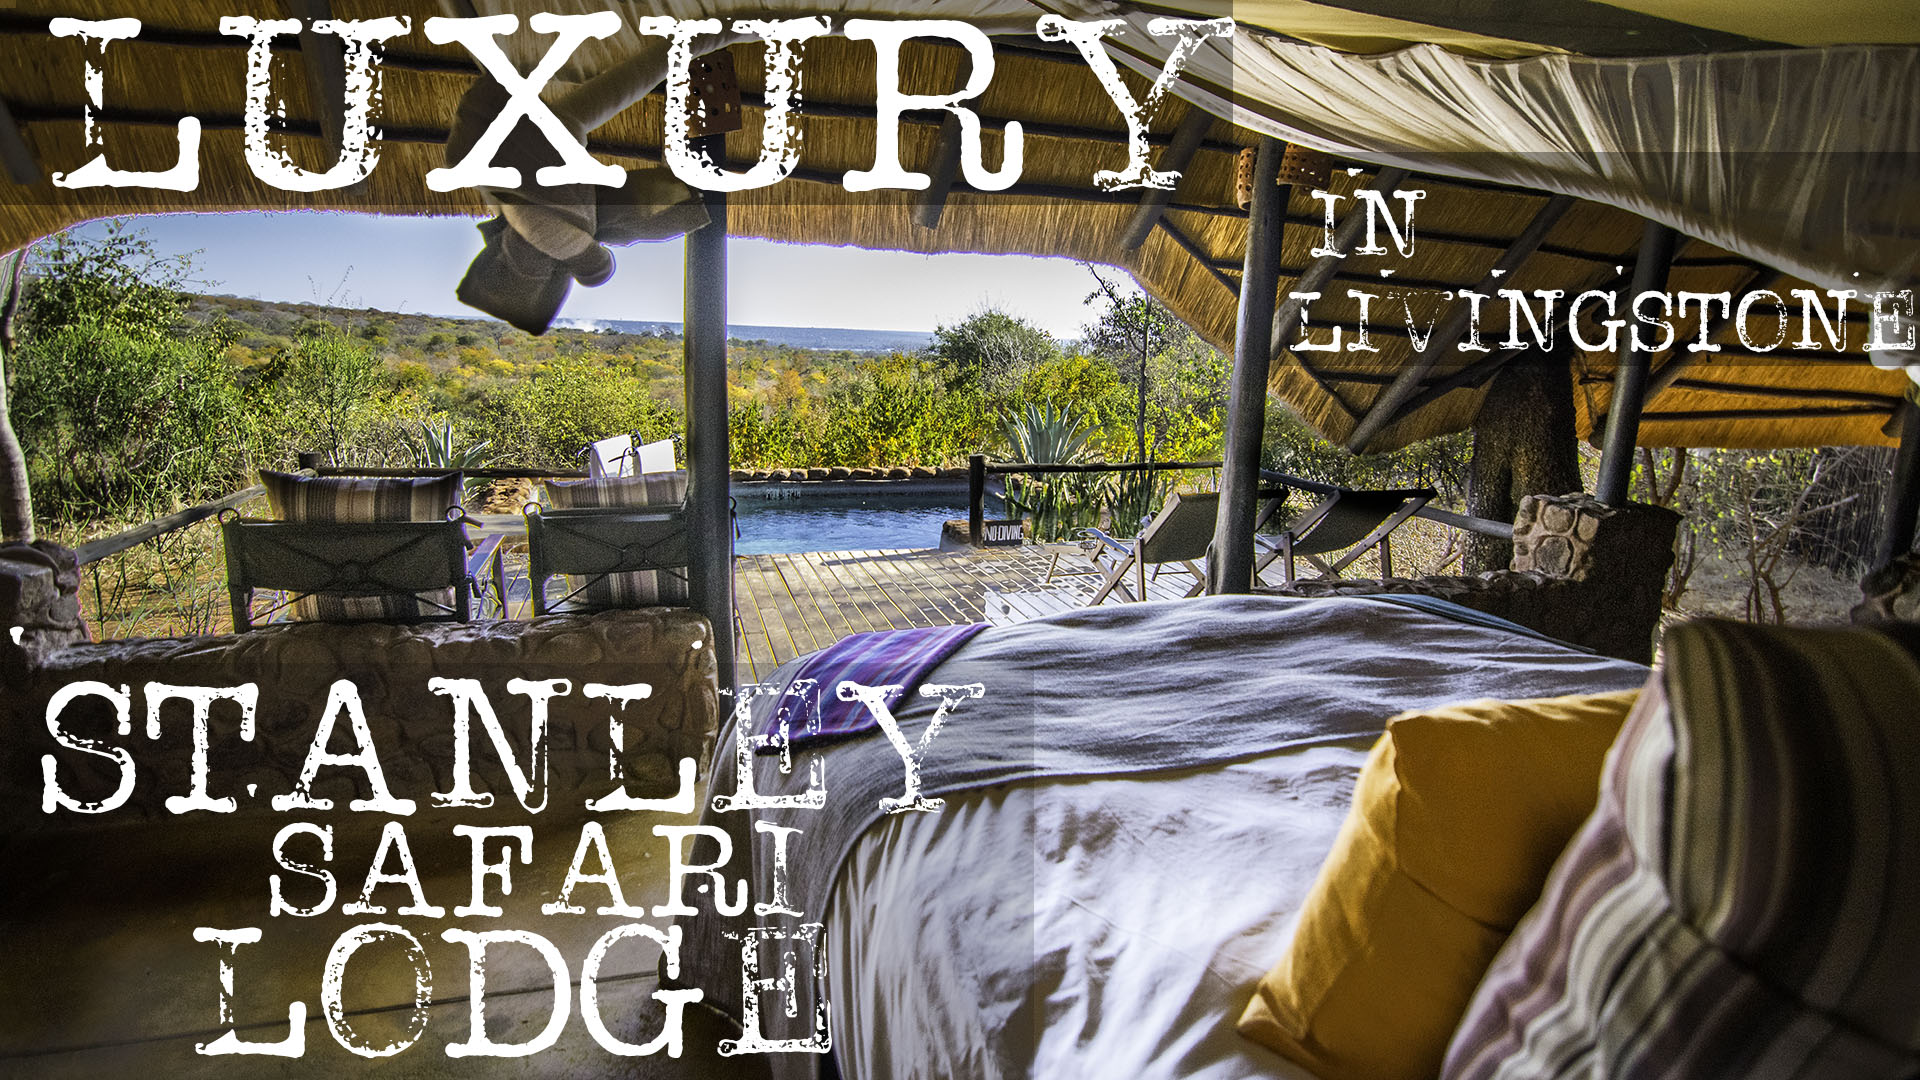 Stanley safari lodge text on picture for feature